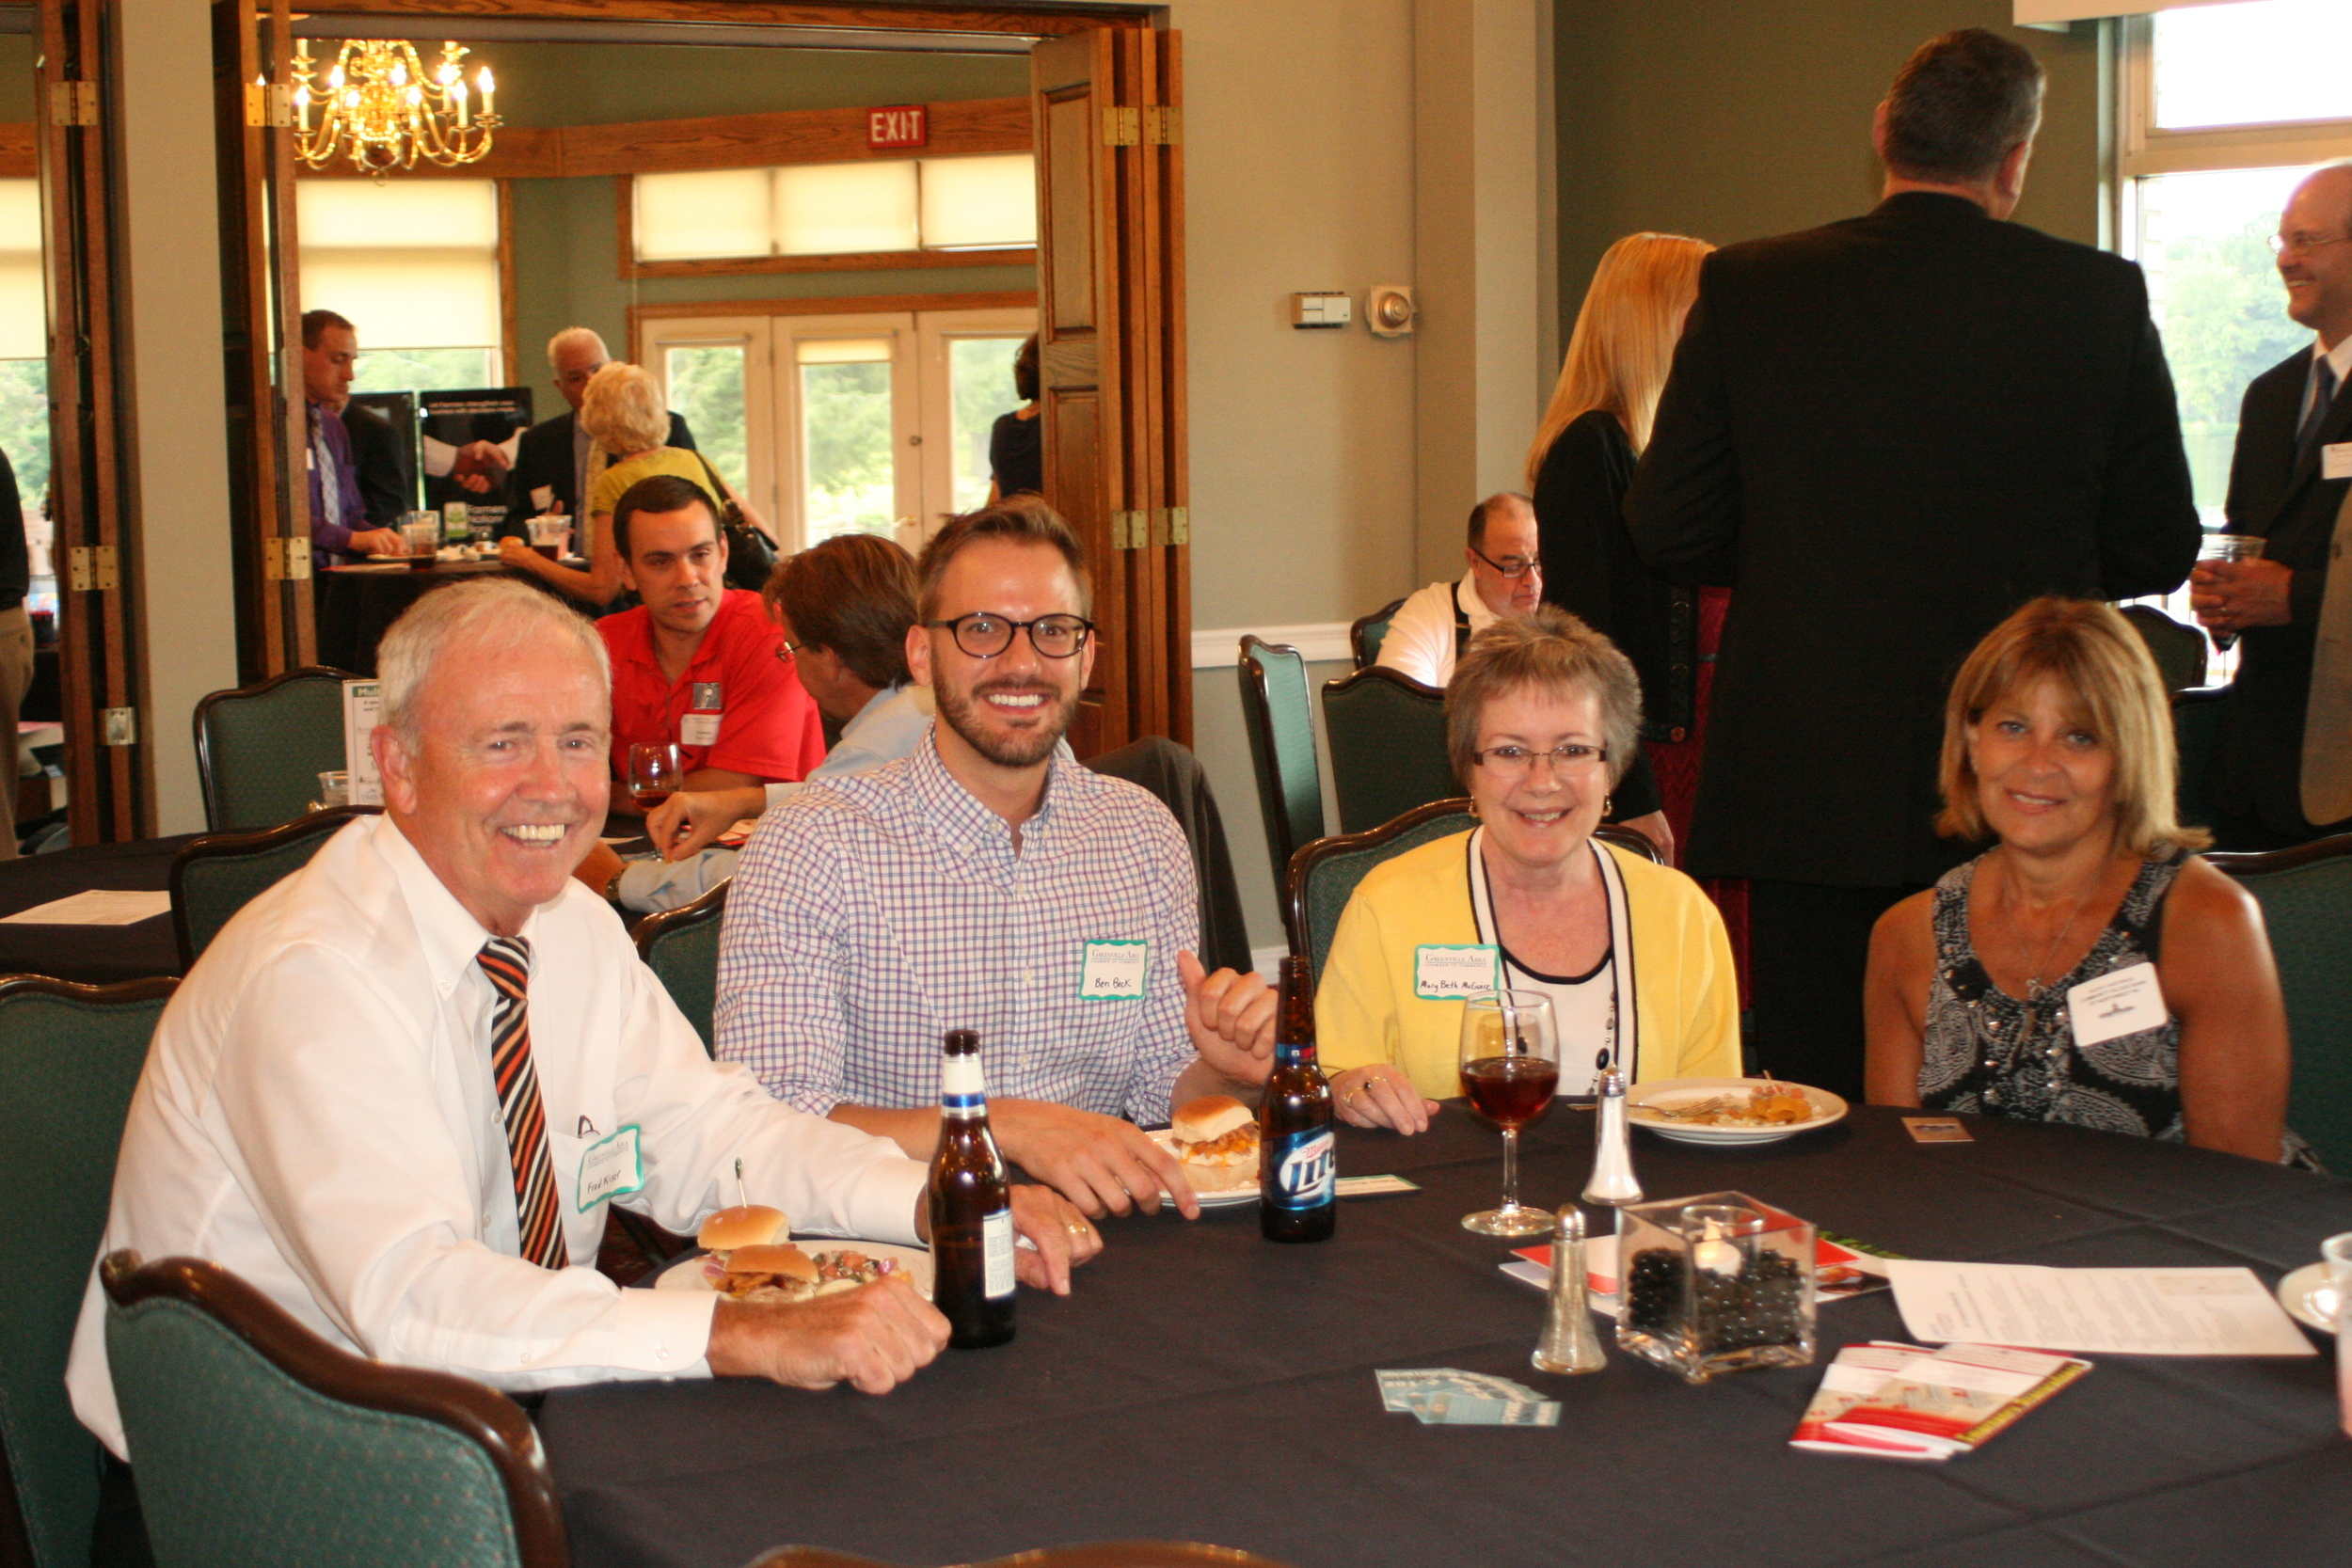 Part of the Greenville Area Chamber Group enjoying some networking.